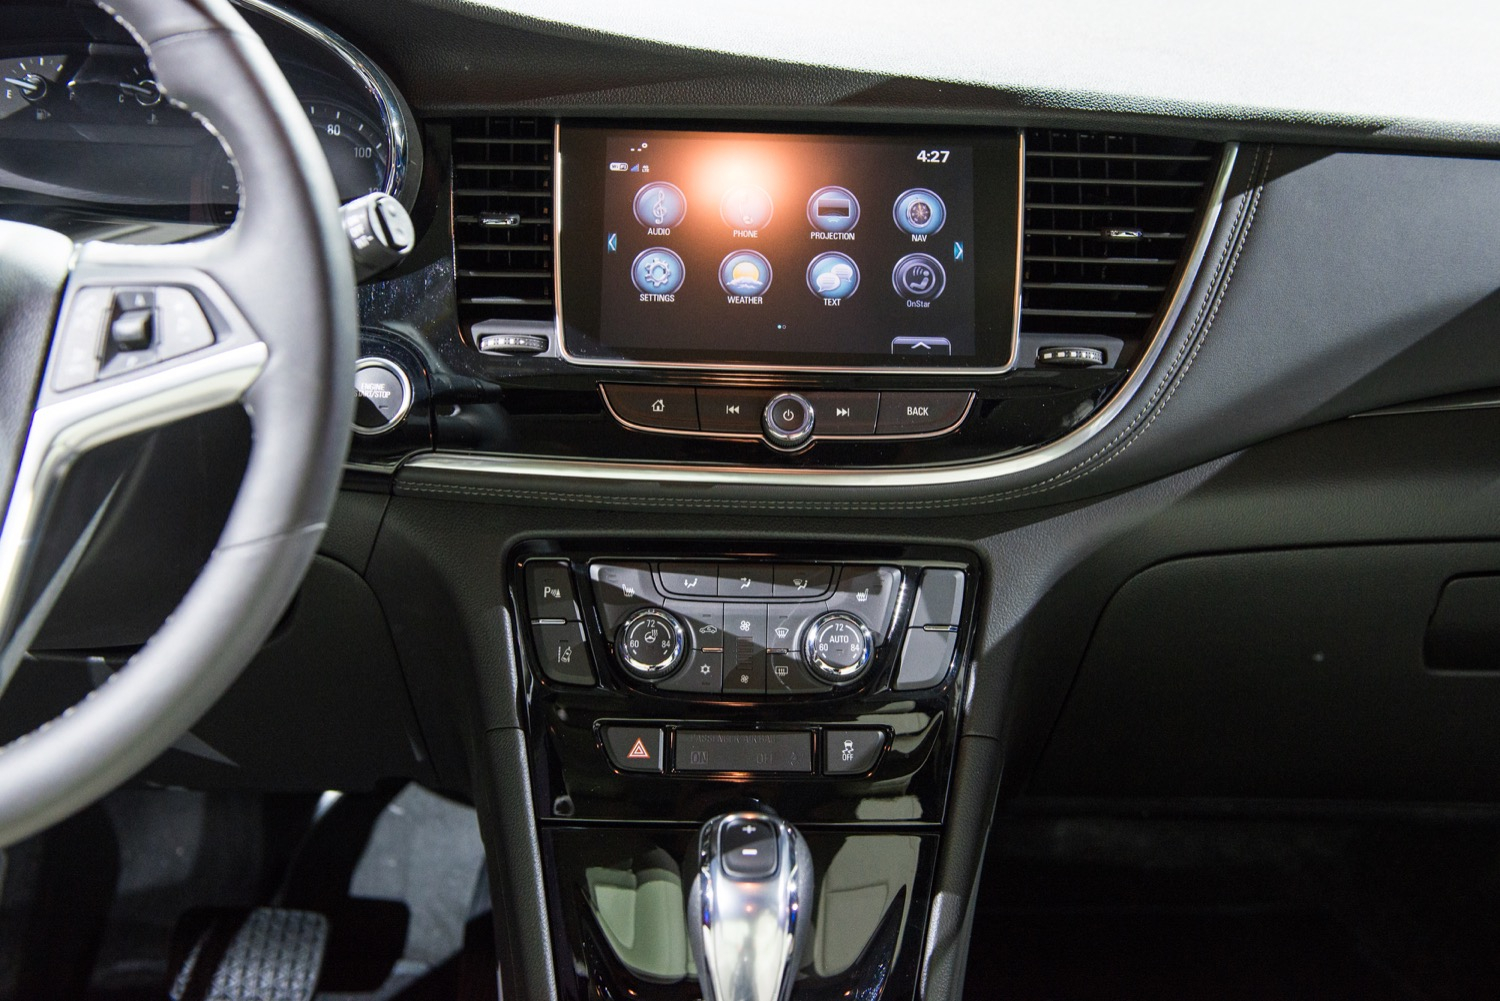 2017 Buick Encore Info, Pictures, Specs, Wiki | Gm Authority New 2022 Buick Encore Horsepower, Interior Colors, Infotainment System